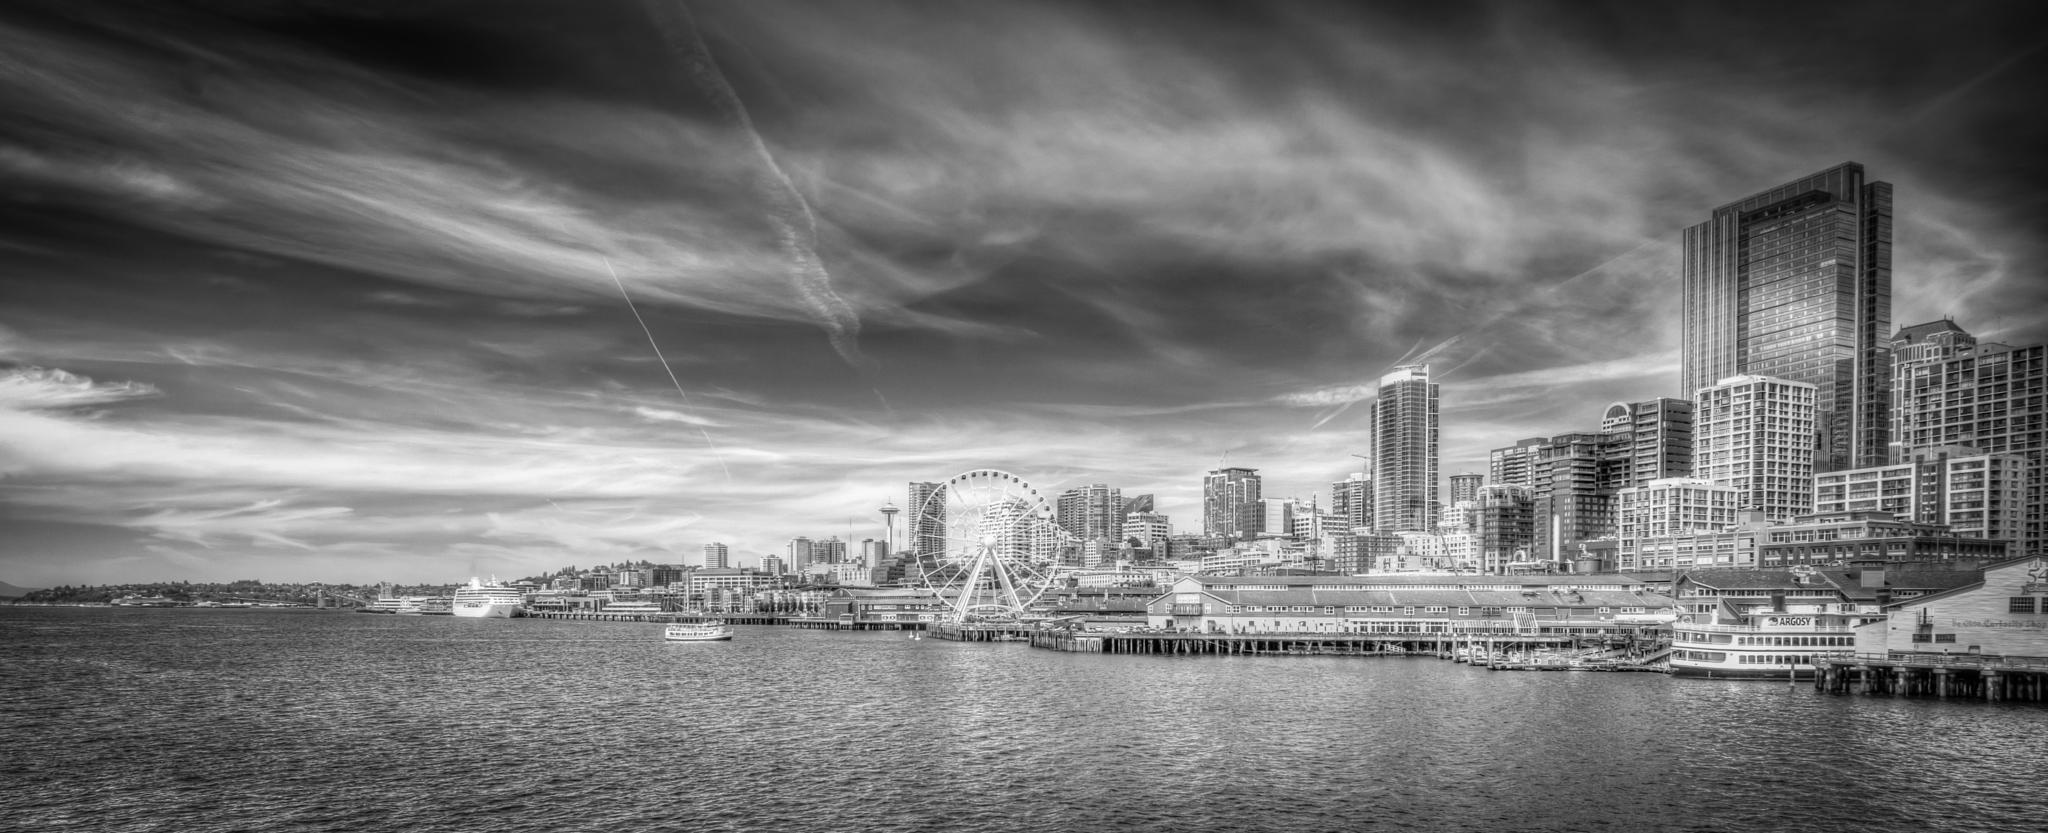 Seattle Waterfront by Ralph Resch